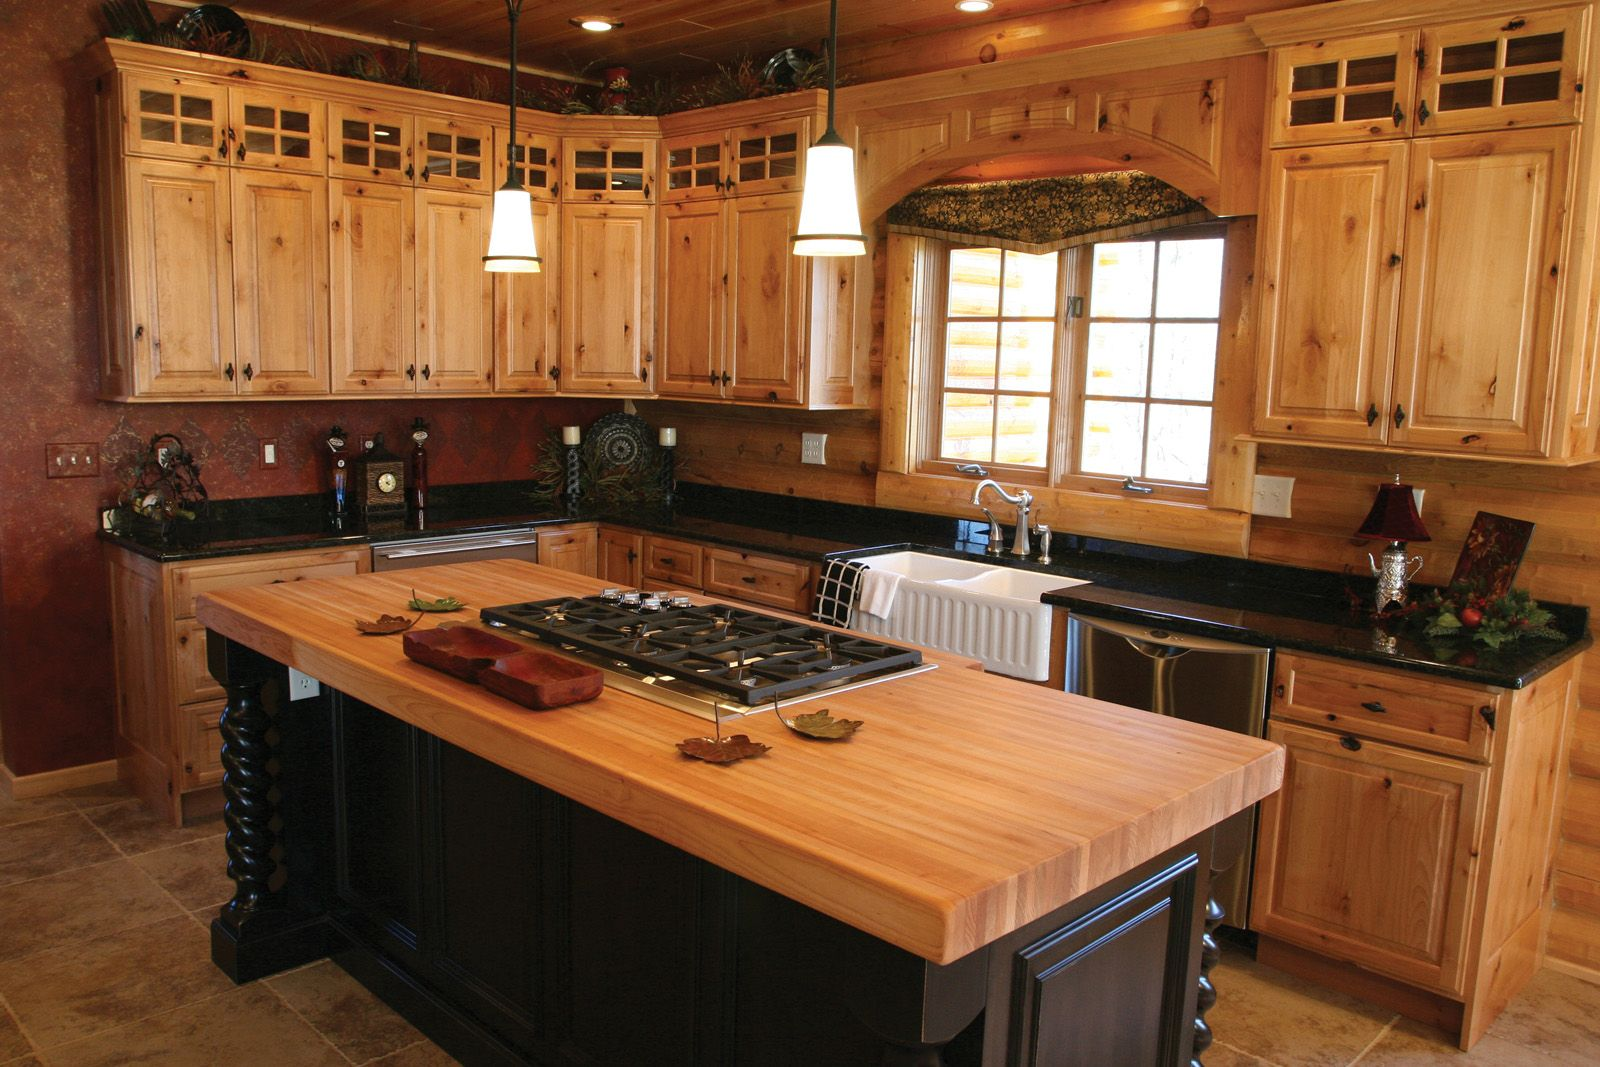 Rustic Kitchen Floors 17 Best Ideas About Hickory Cabinets On Pinterest Rustic Hickory